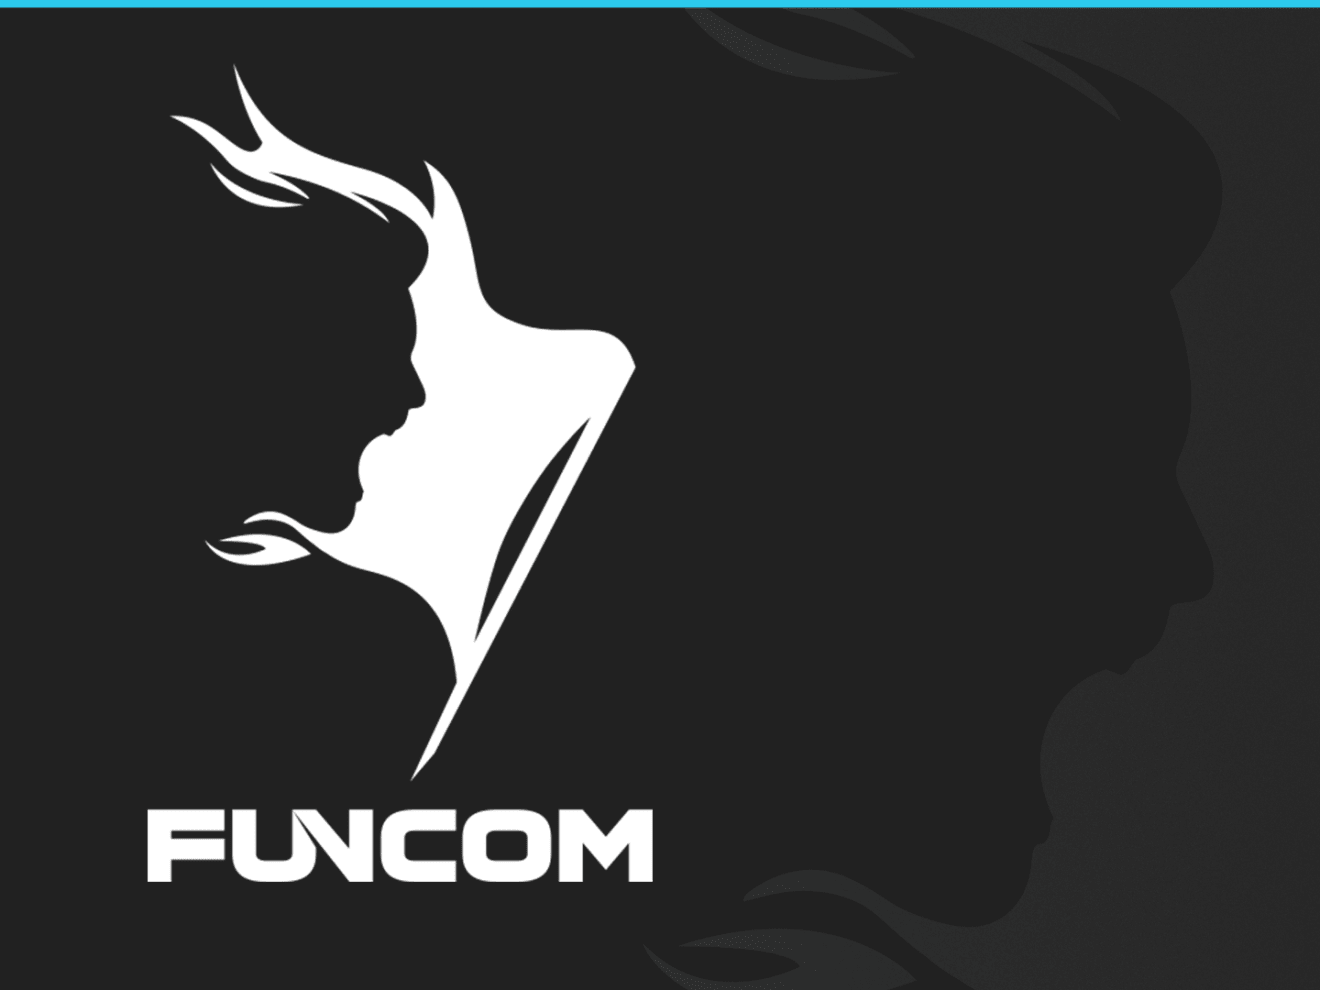 Tencent to acquire 29% of game developer and publisher Funcom